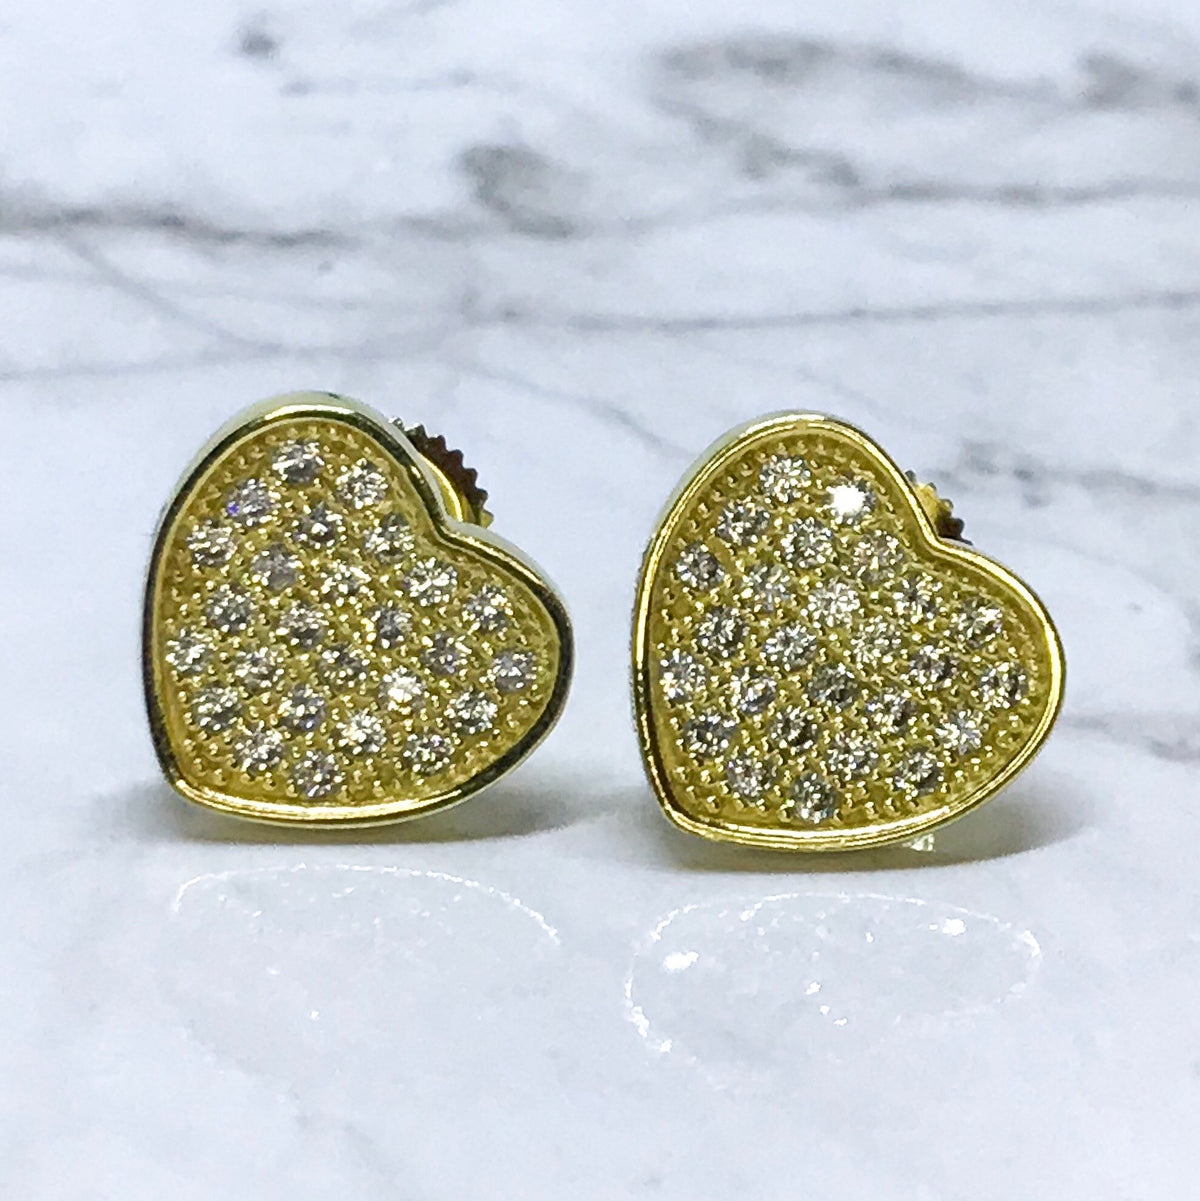 NEW 14K Yellow Gold Layered on Sterling Silver Heart Shaped Screw Back Stud Earrings